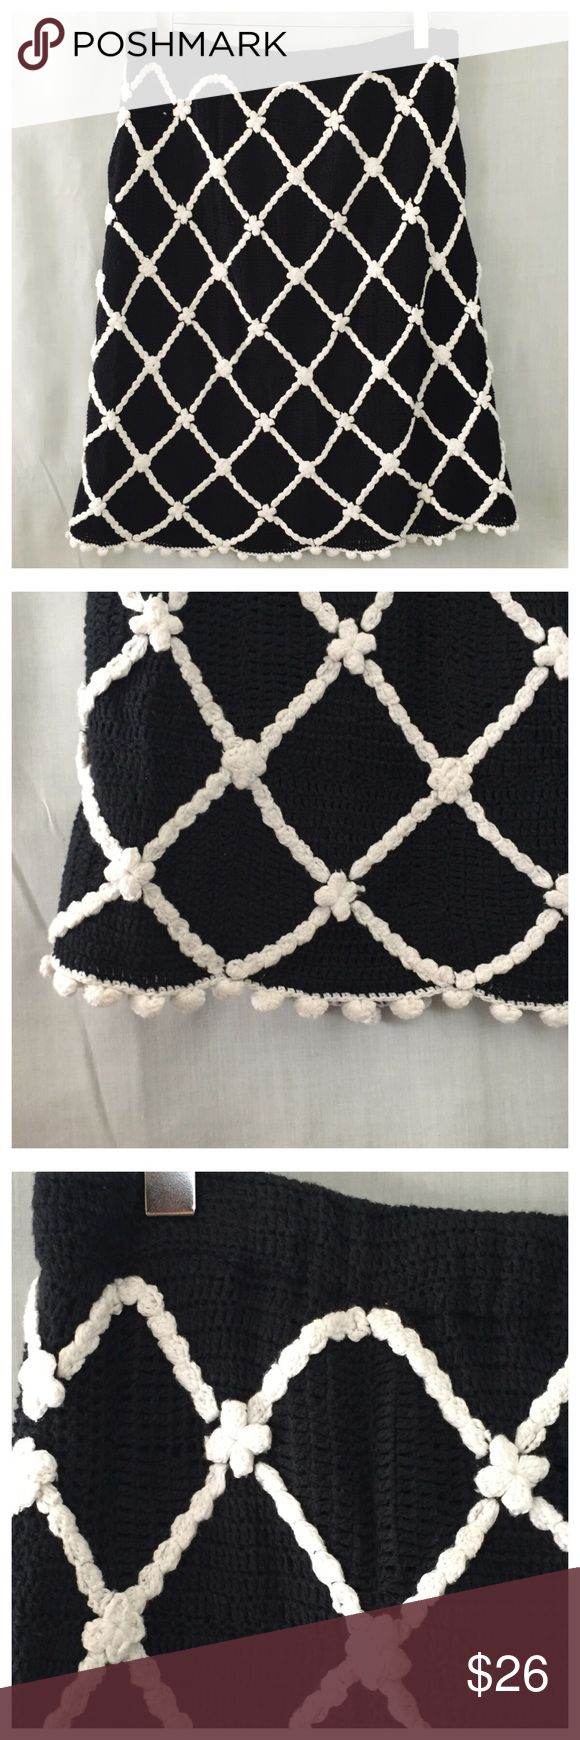 Etcetera Crochet Diamond Lattice Pom Pom Skirt L Etcetera Crochet Diamond Lattice Pom Pom Black White Skirt  • Large  • 100% cotton • Fully lined • Black crochet sweater knit background with white crochet appliqué diamond flower lattice design with pom-pom embellishment at hem • Elastic waistband • 16 inch waist • 21 inch hips • 24 inch length • A line • Very good pre-loved condition, no imperfections Etcetera Skirts